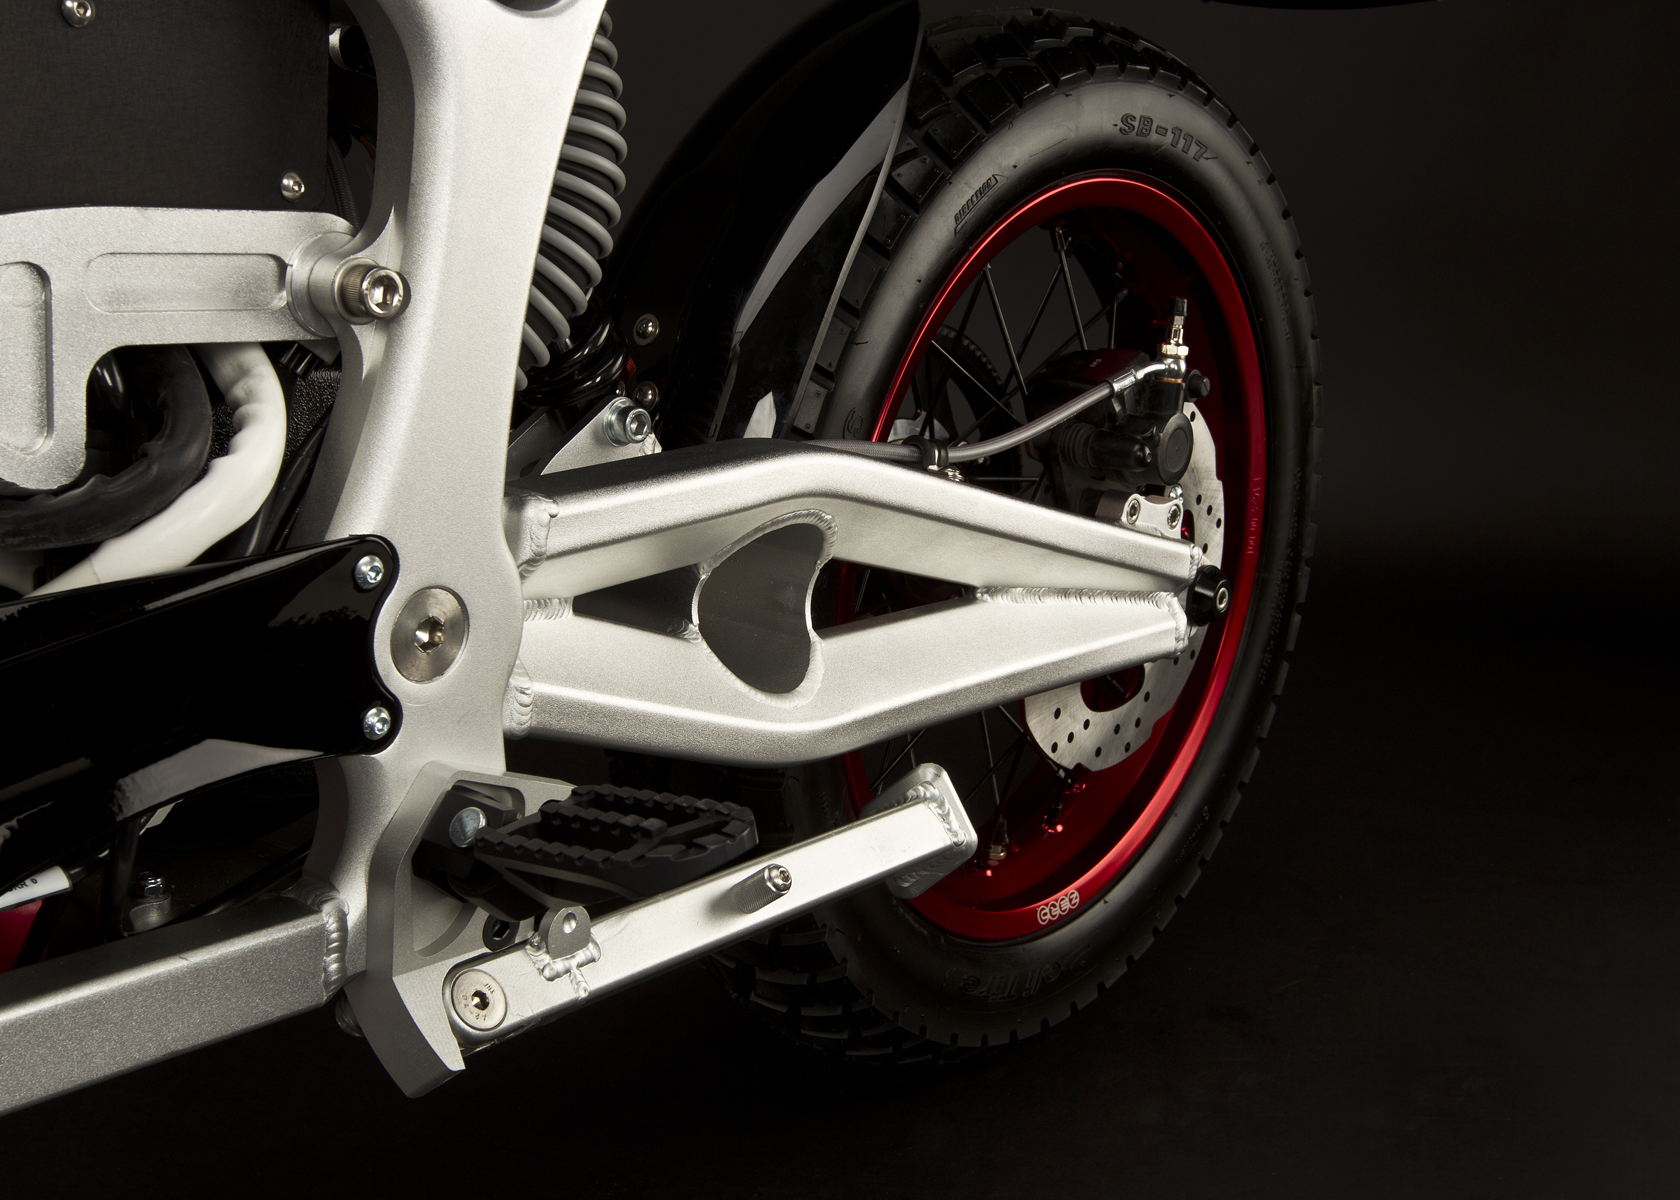 2011 Zero DS Electric Motorcycle: Swingarm